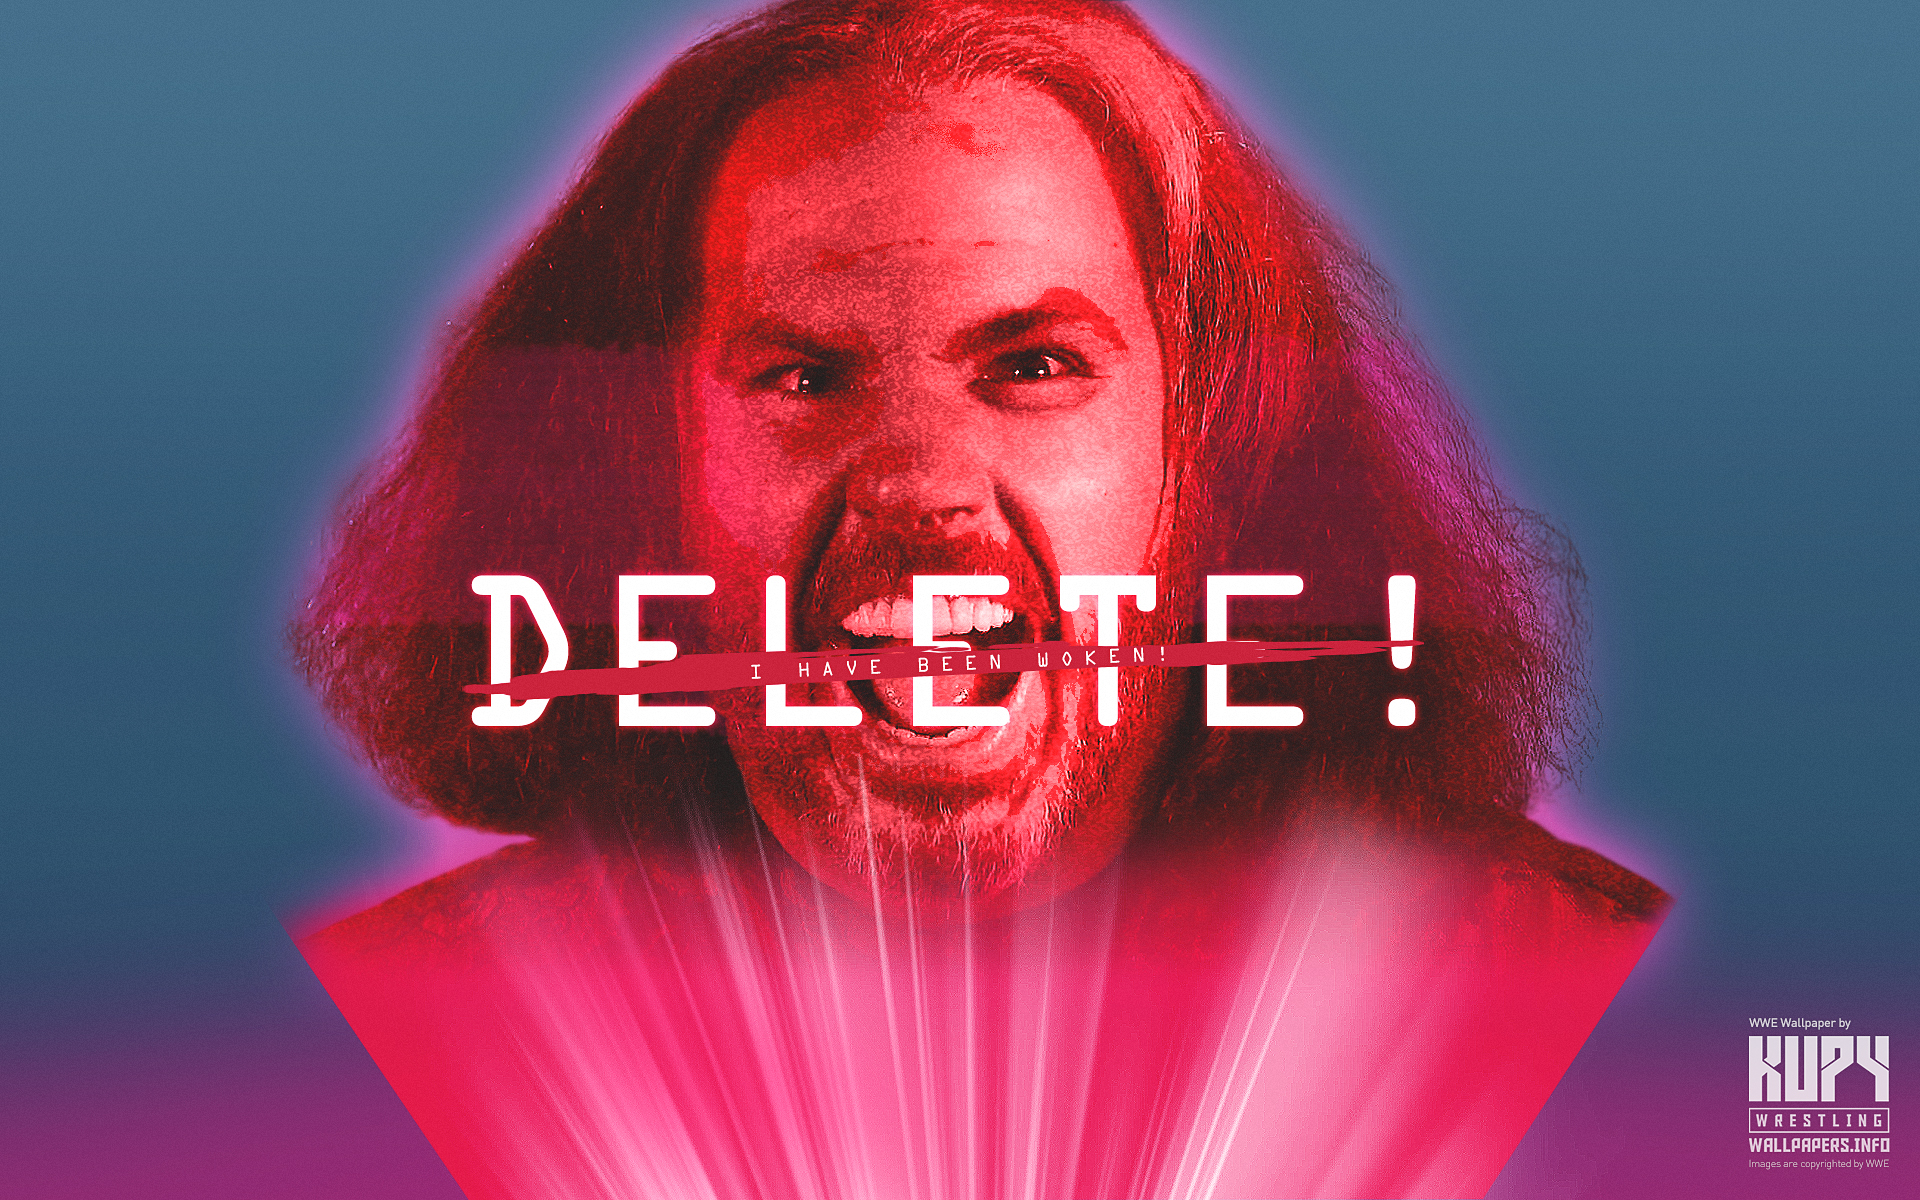 Delete new woken matt hardy wallpaper kupy wrestling 16801050 1600900 1440900 1366768 1280800 1024768 ipad tablet ios android mobile wallpaper facebook timeline cover delete ccuart Image collections